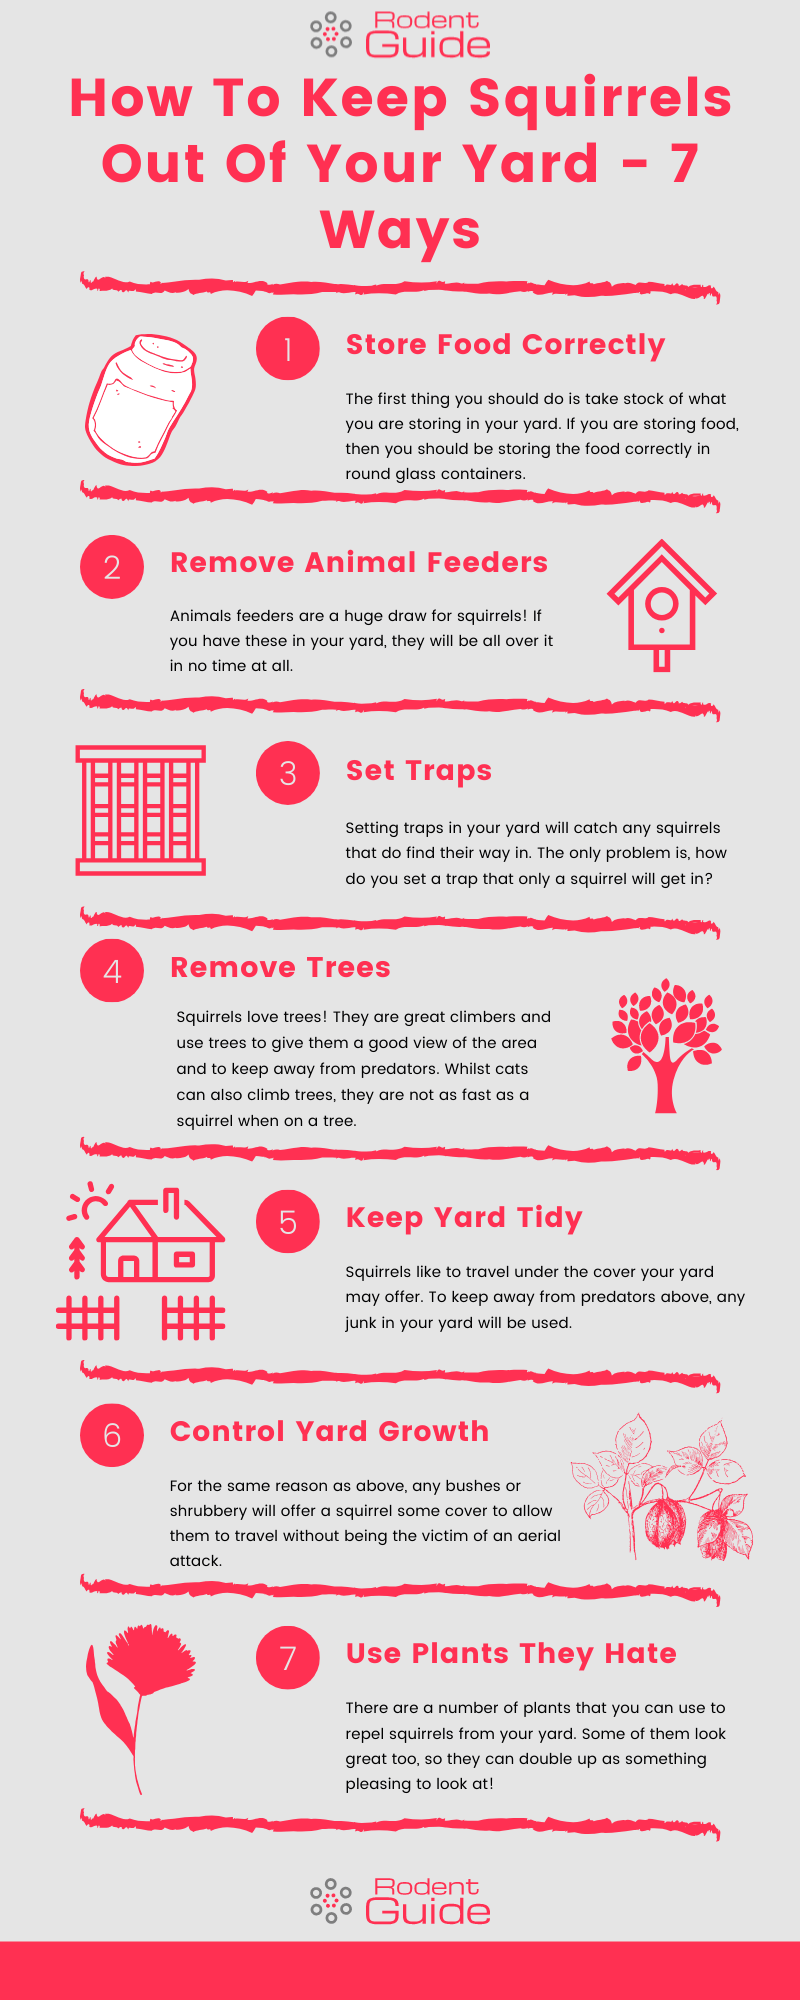 How To Keep Squirrels Out Of Your Yard Infographic